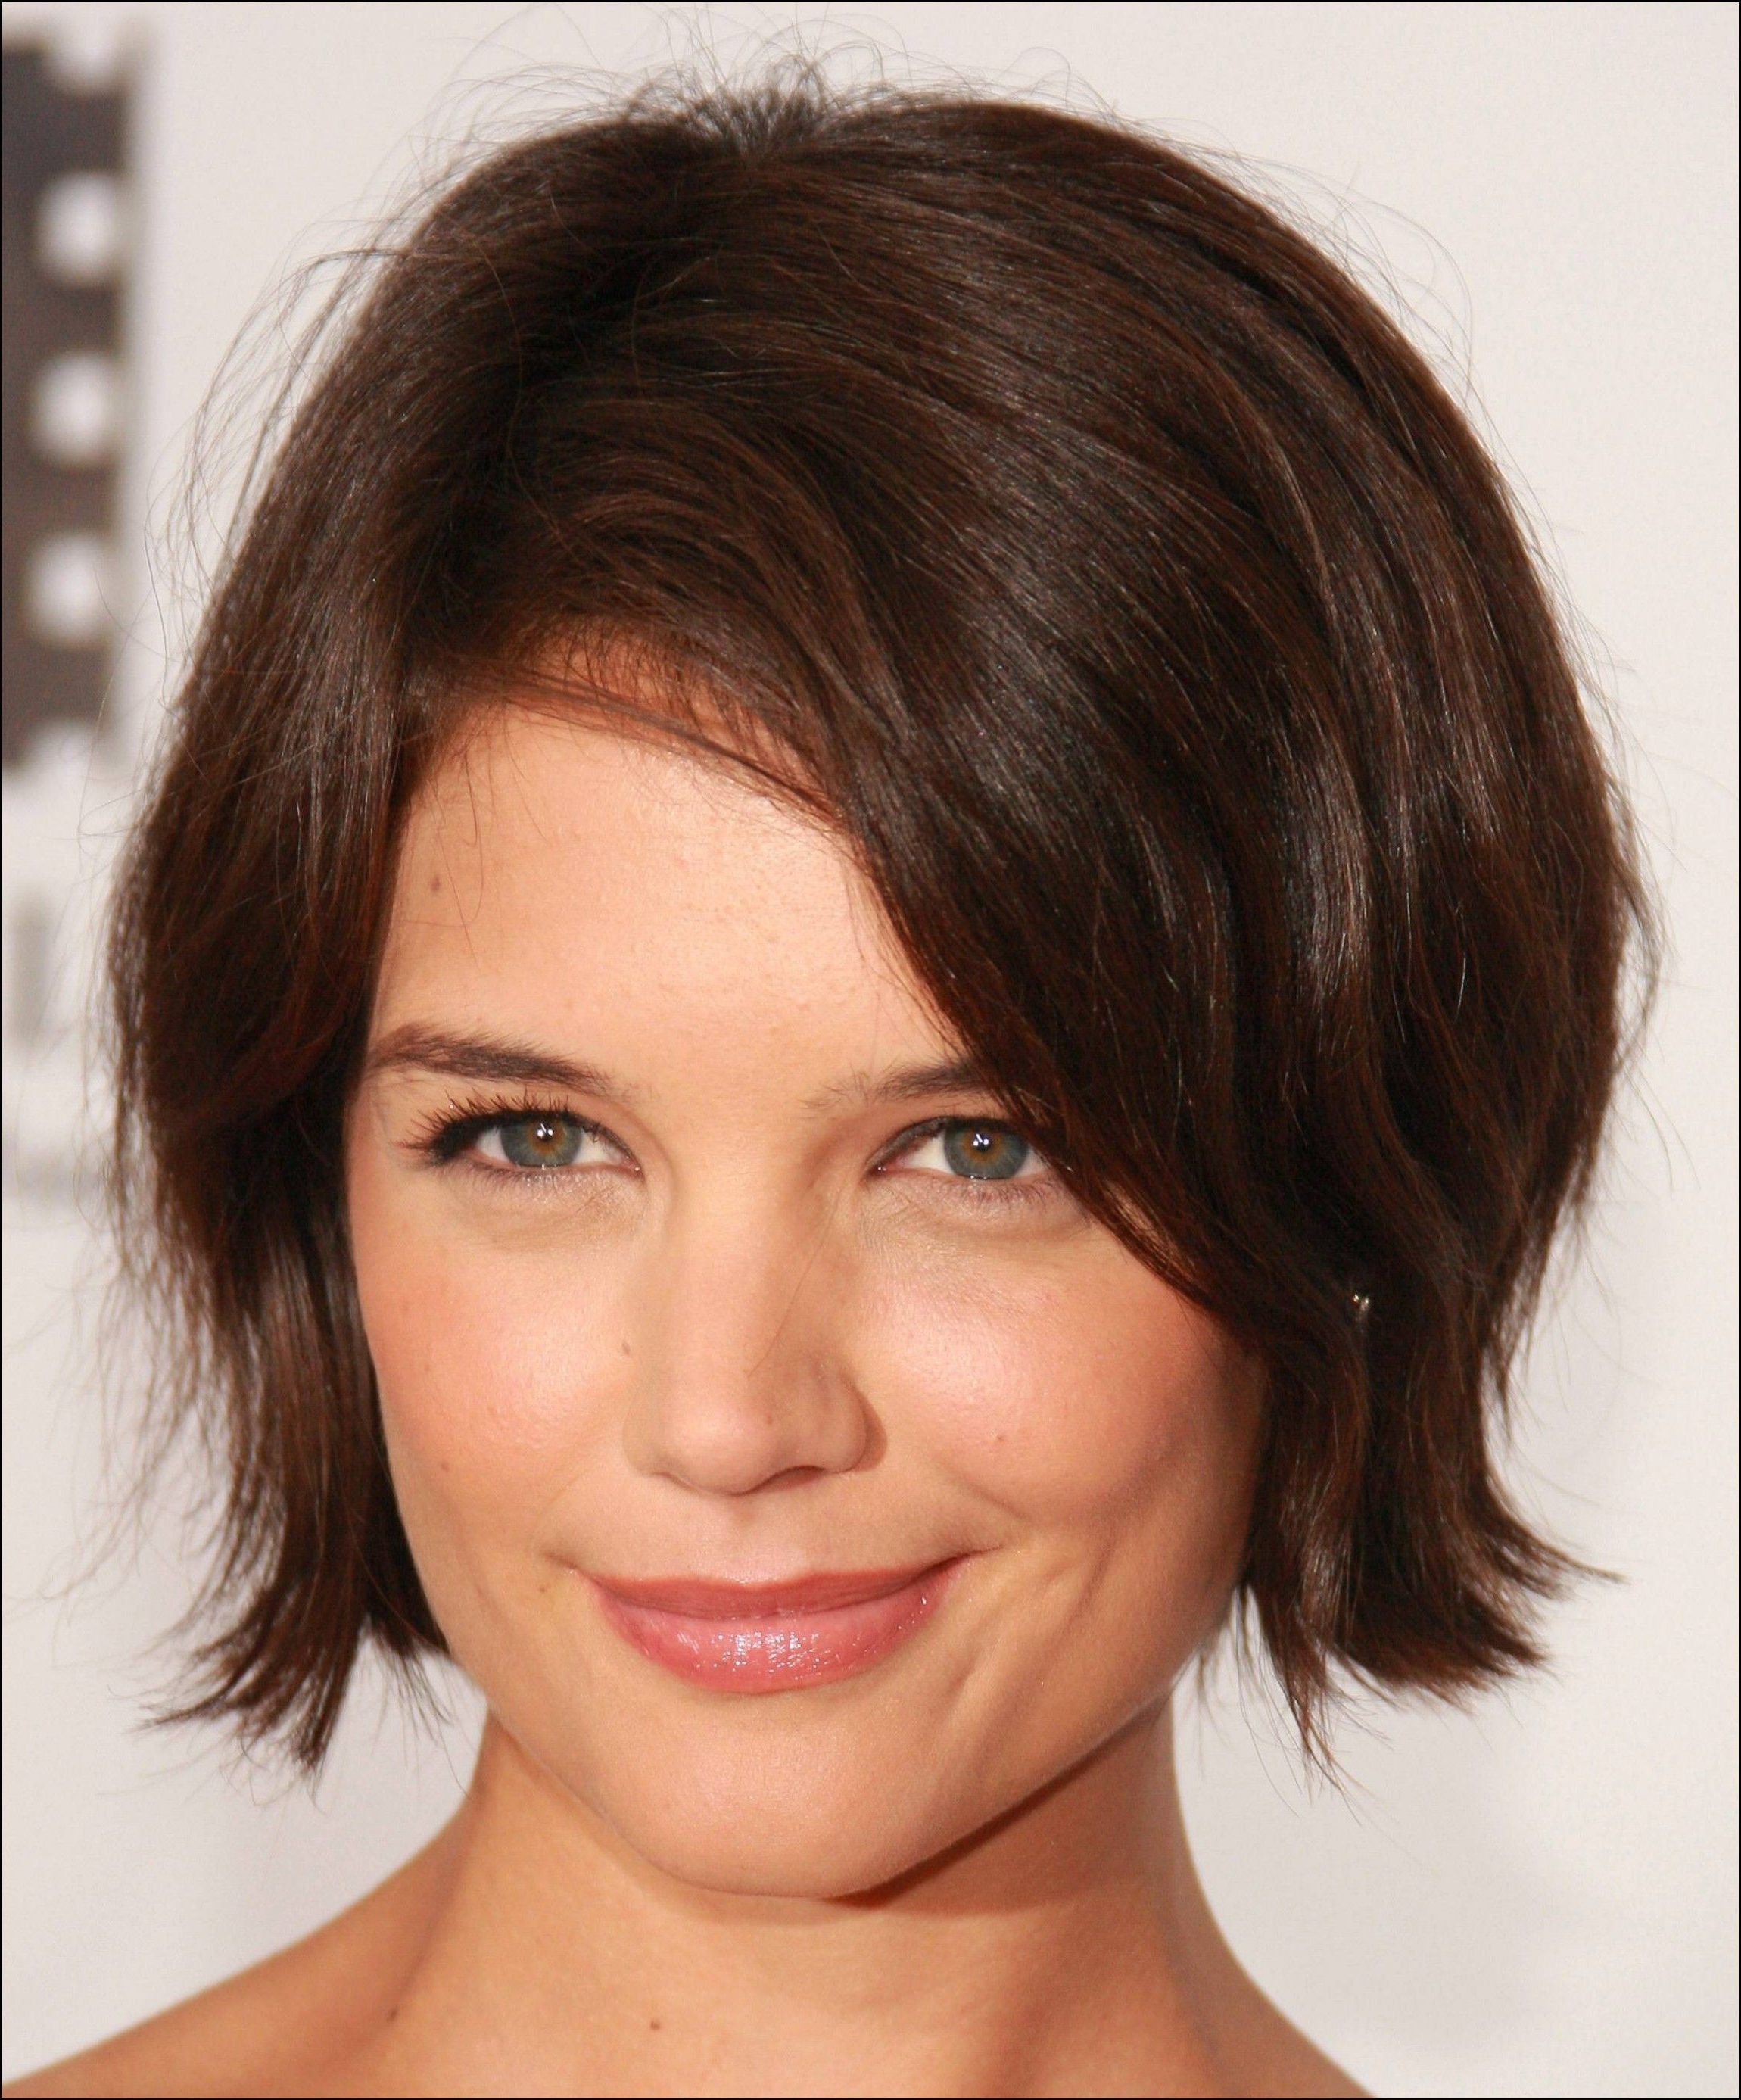 Cute Short Haircuts For Round Faces And Thick Hair | Hair Inside Short Hairstyles For Small Faces (View 2 of 25)